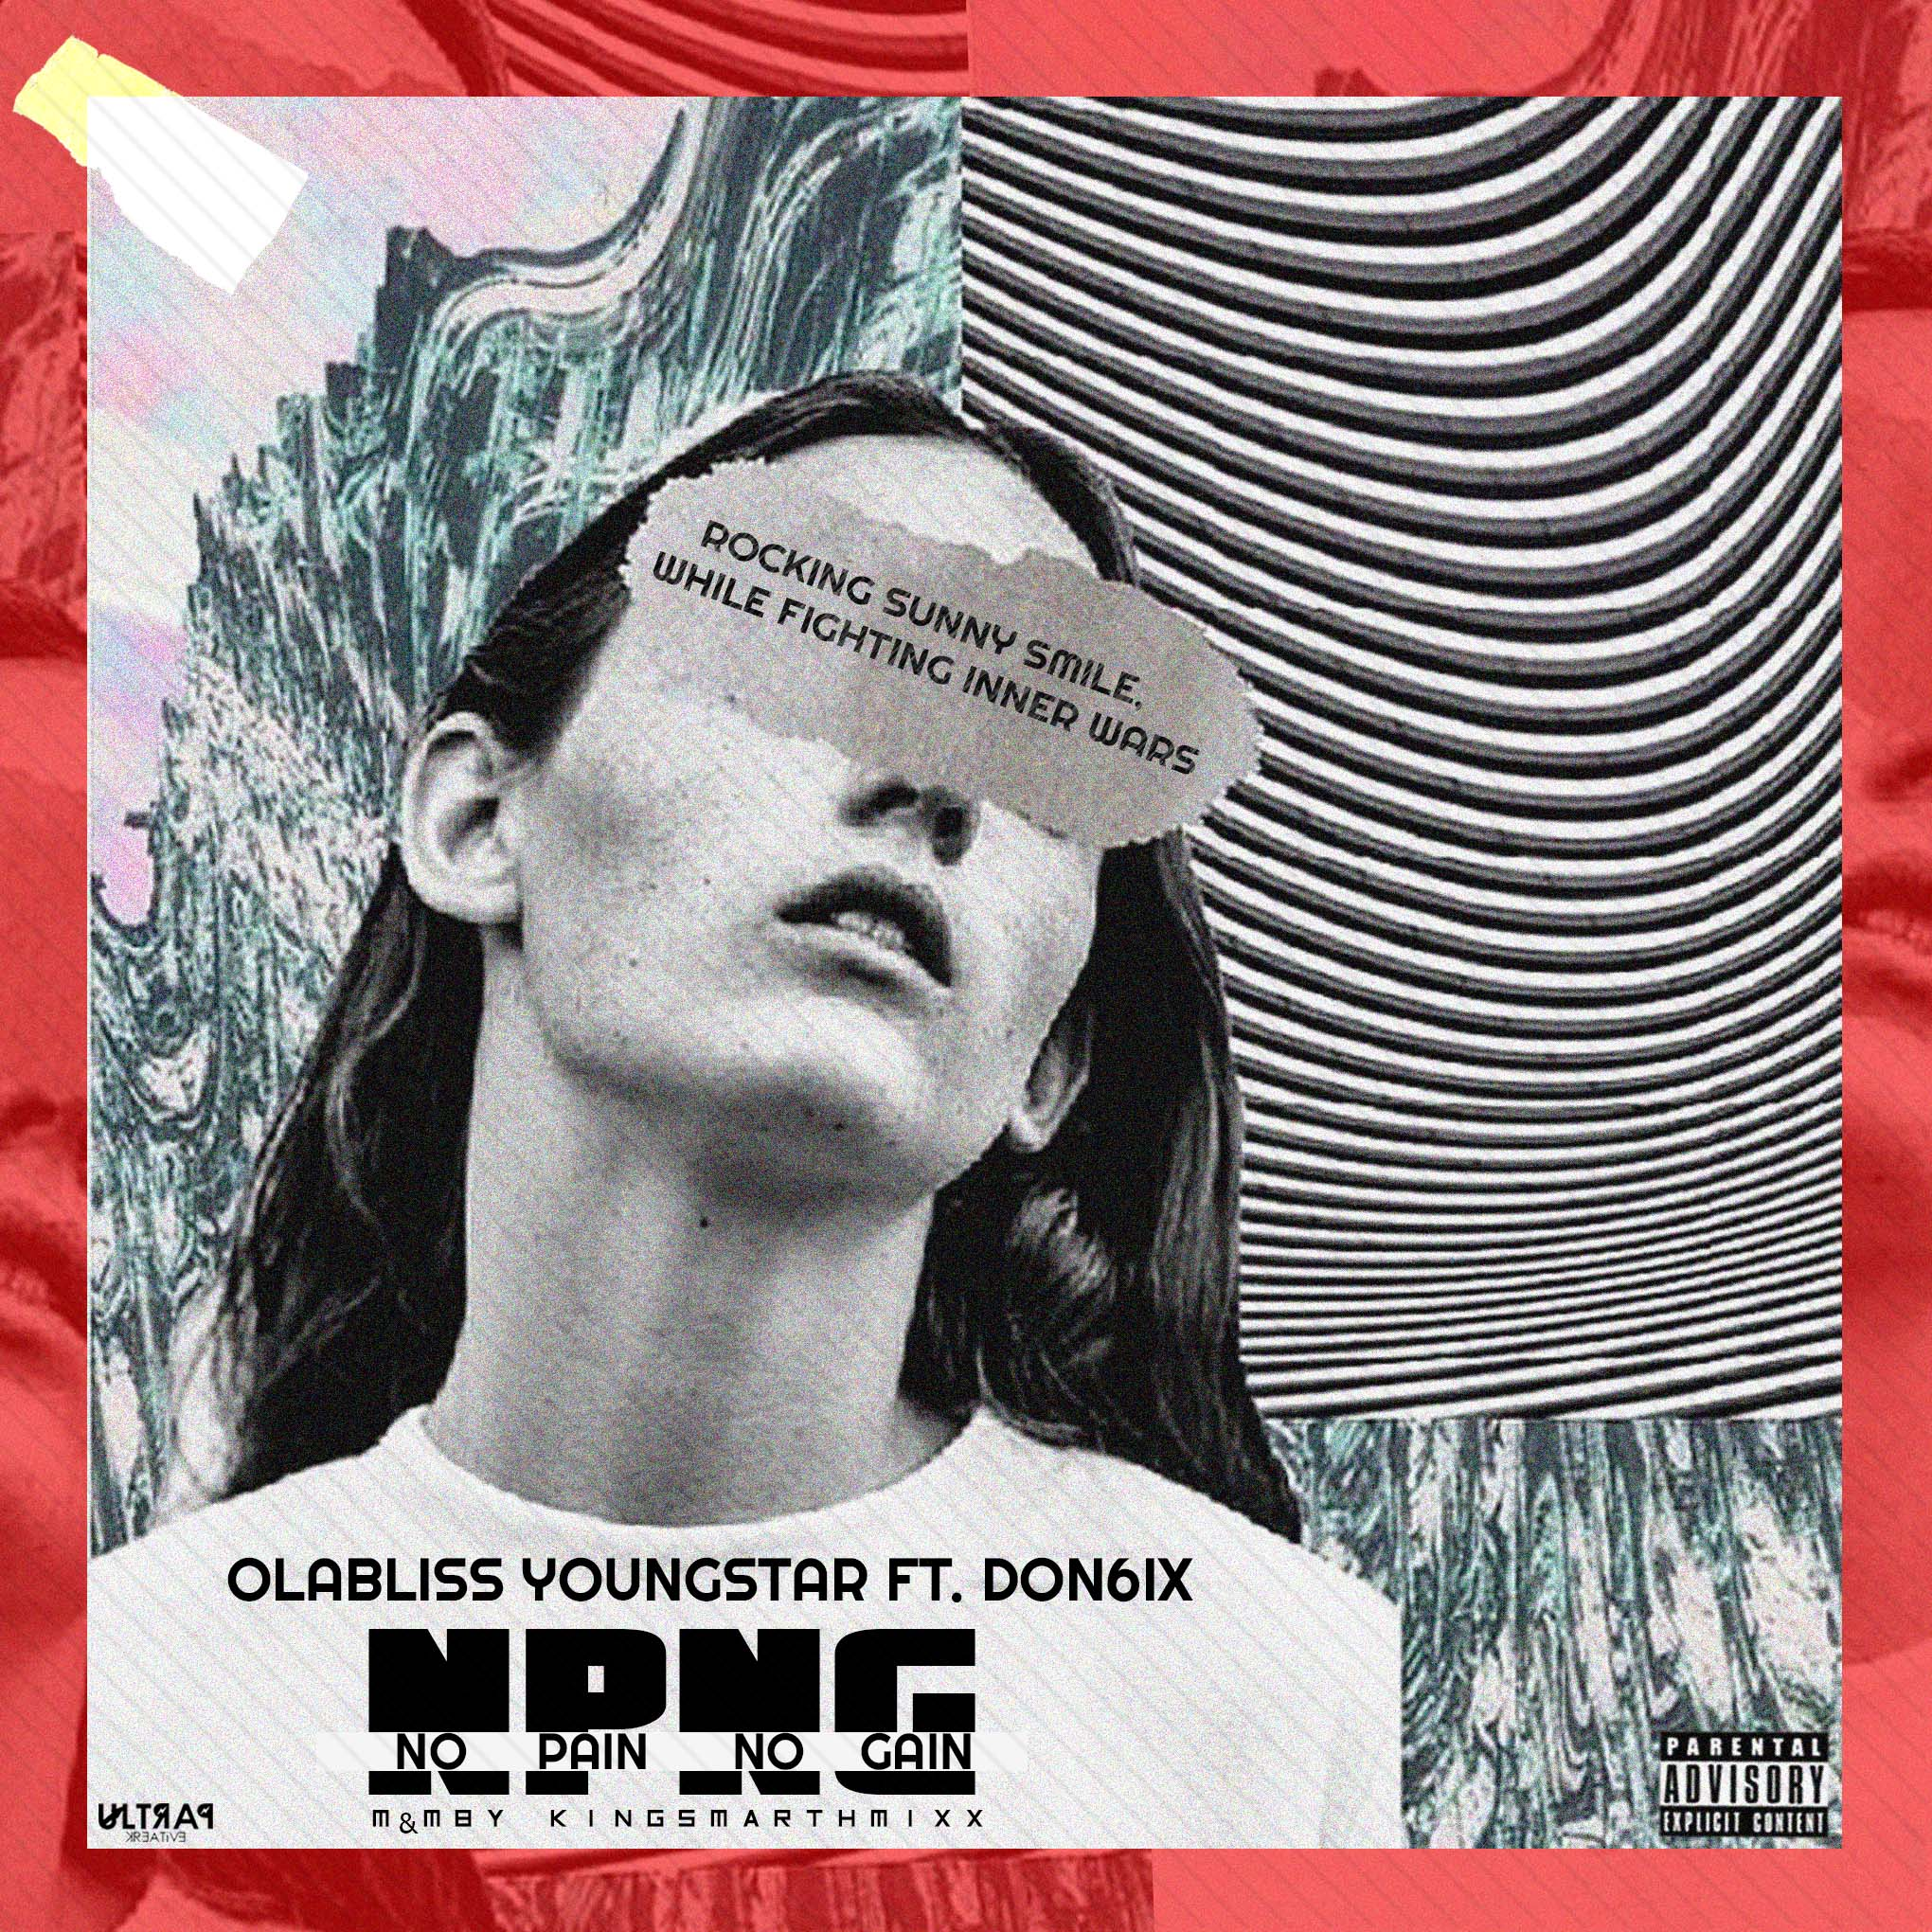 Olabliss Youngstar - NPNG